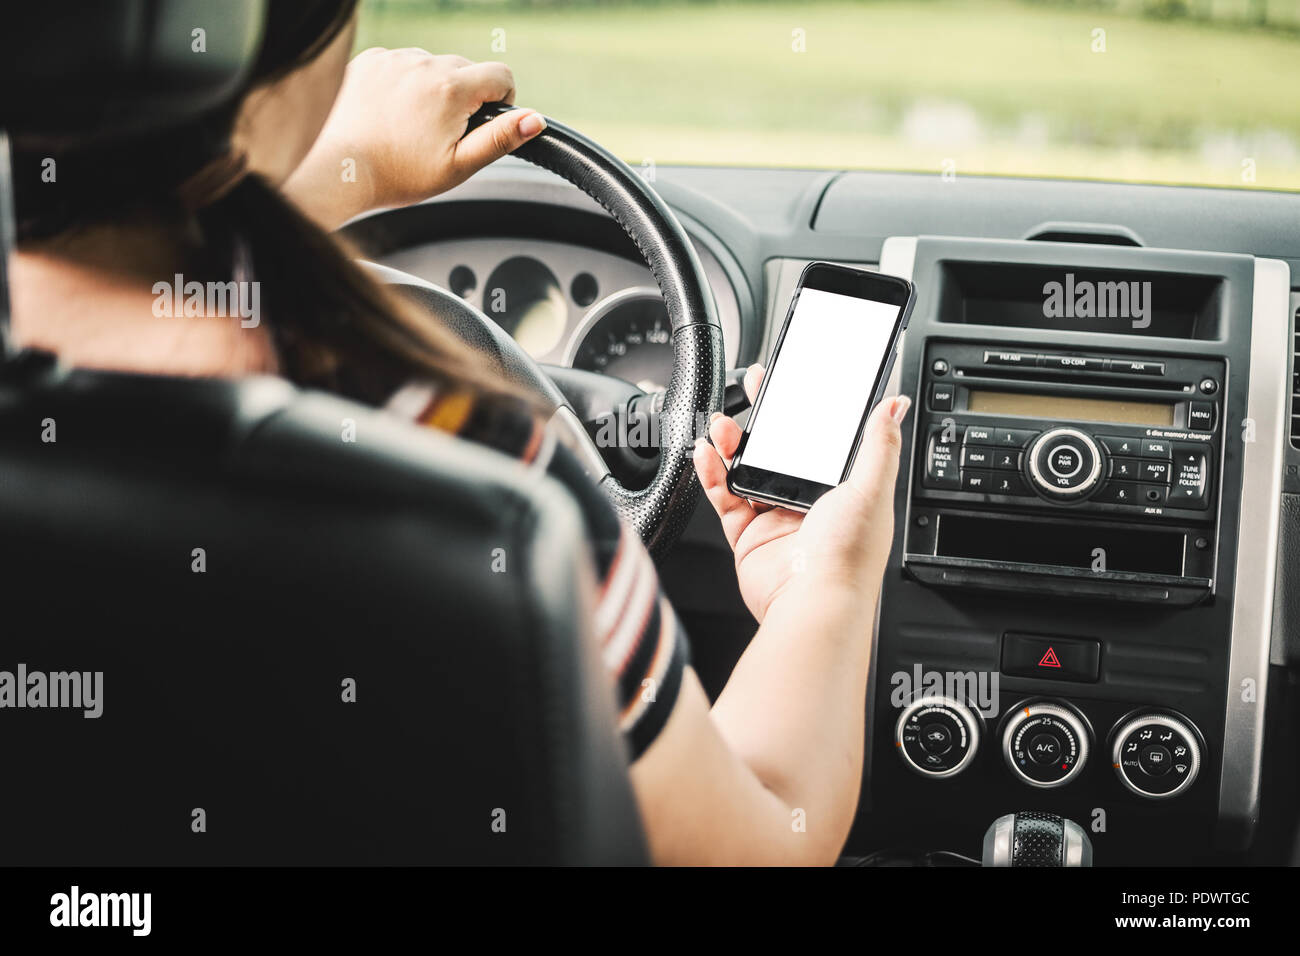 Young female driver using touch screen smartphone and gps navigation in a car. - Stock Image